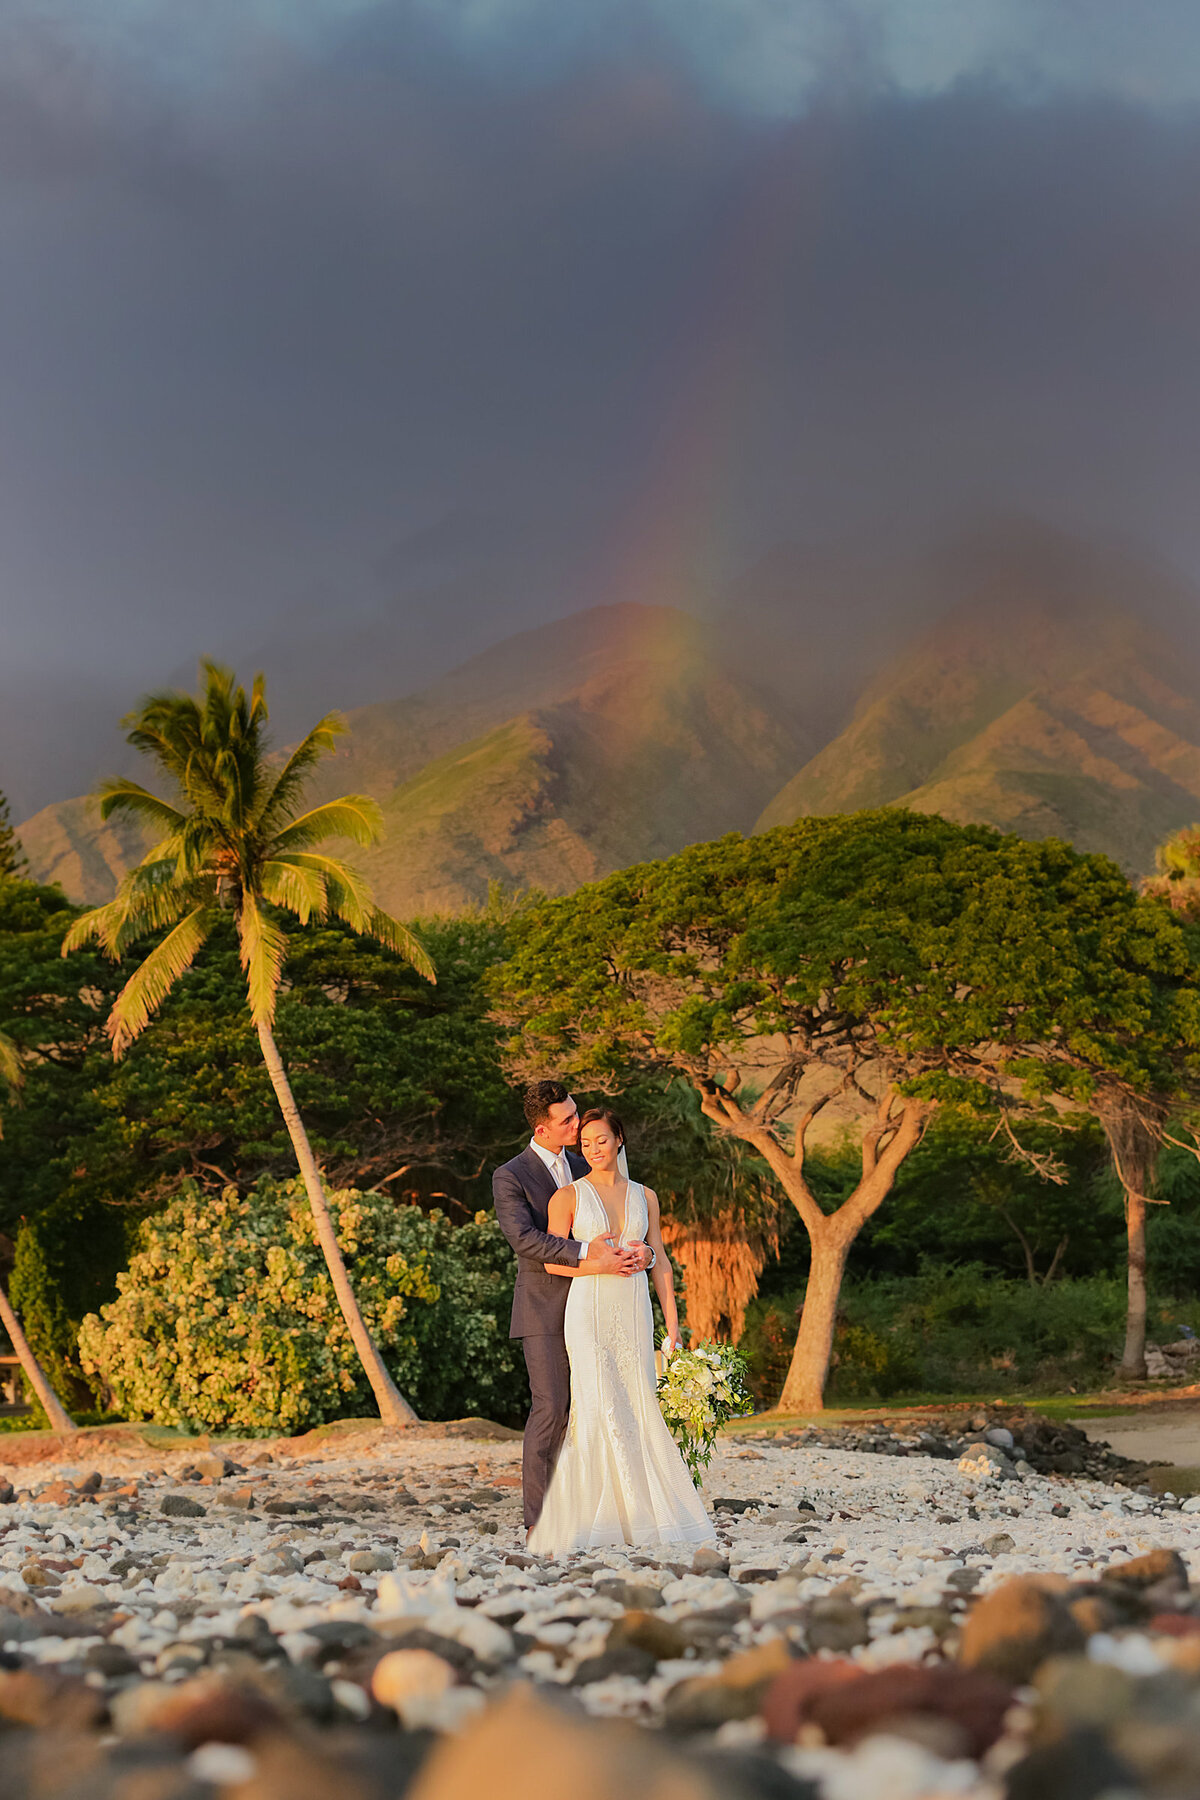 Bride and groom posing in front of Olowalu Plantation House with rainbow in the background